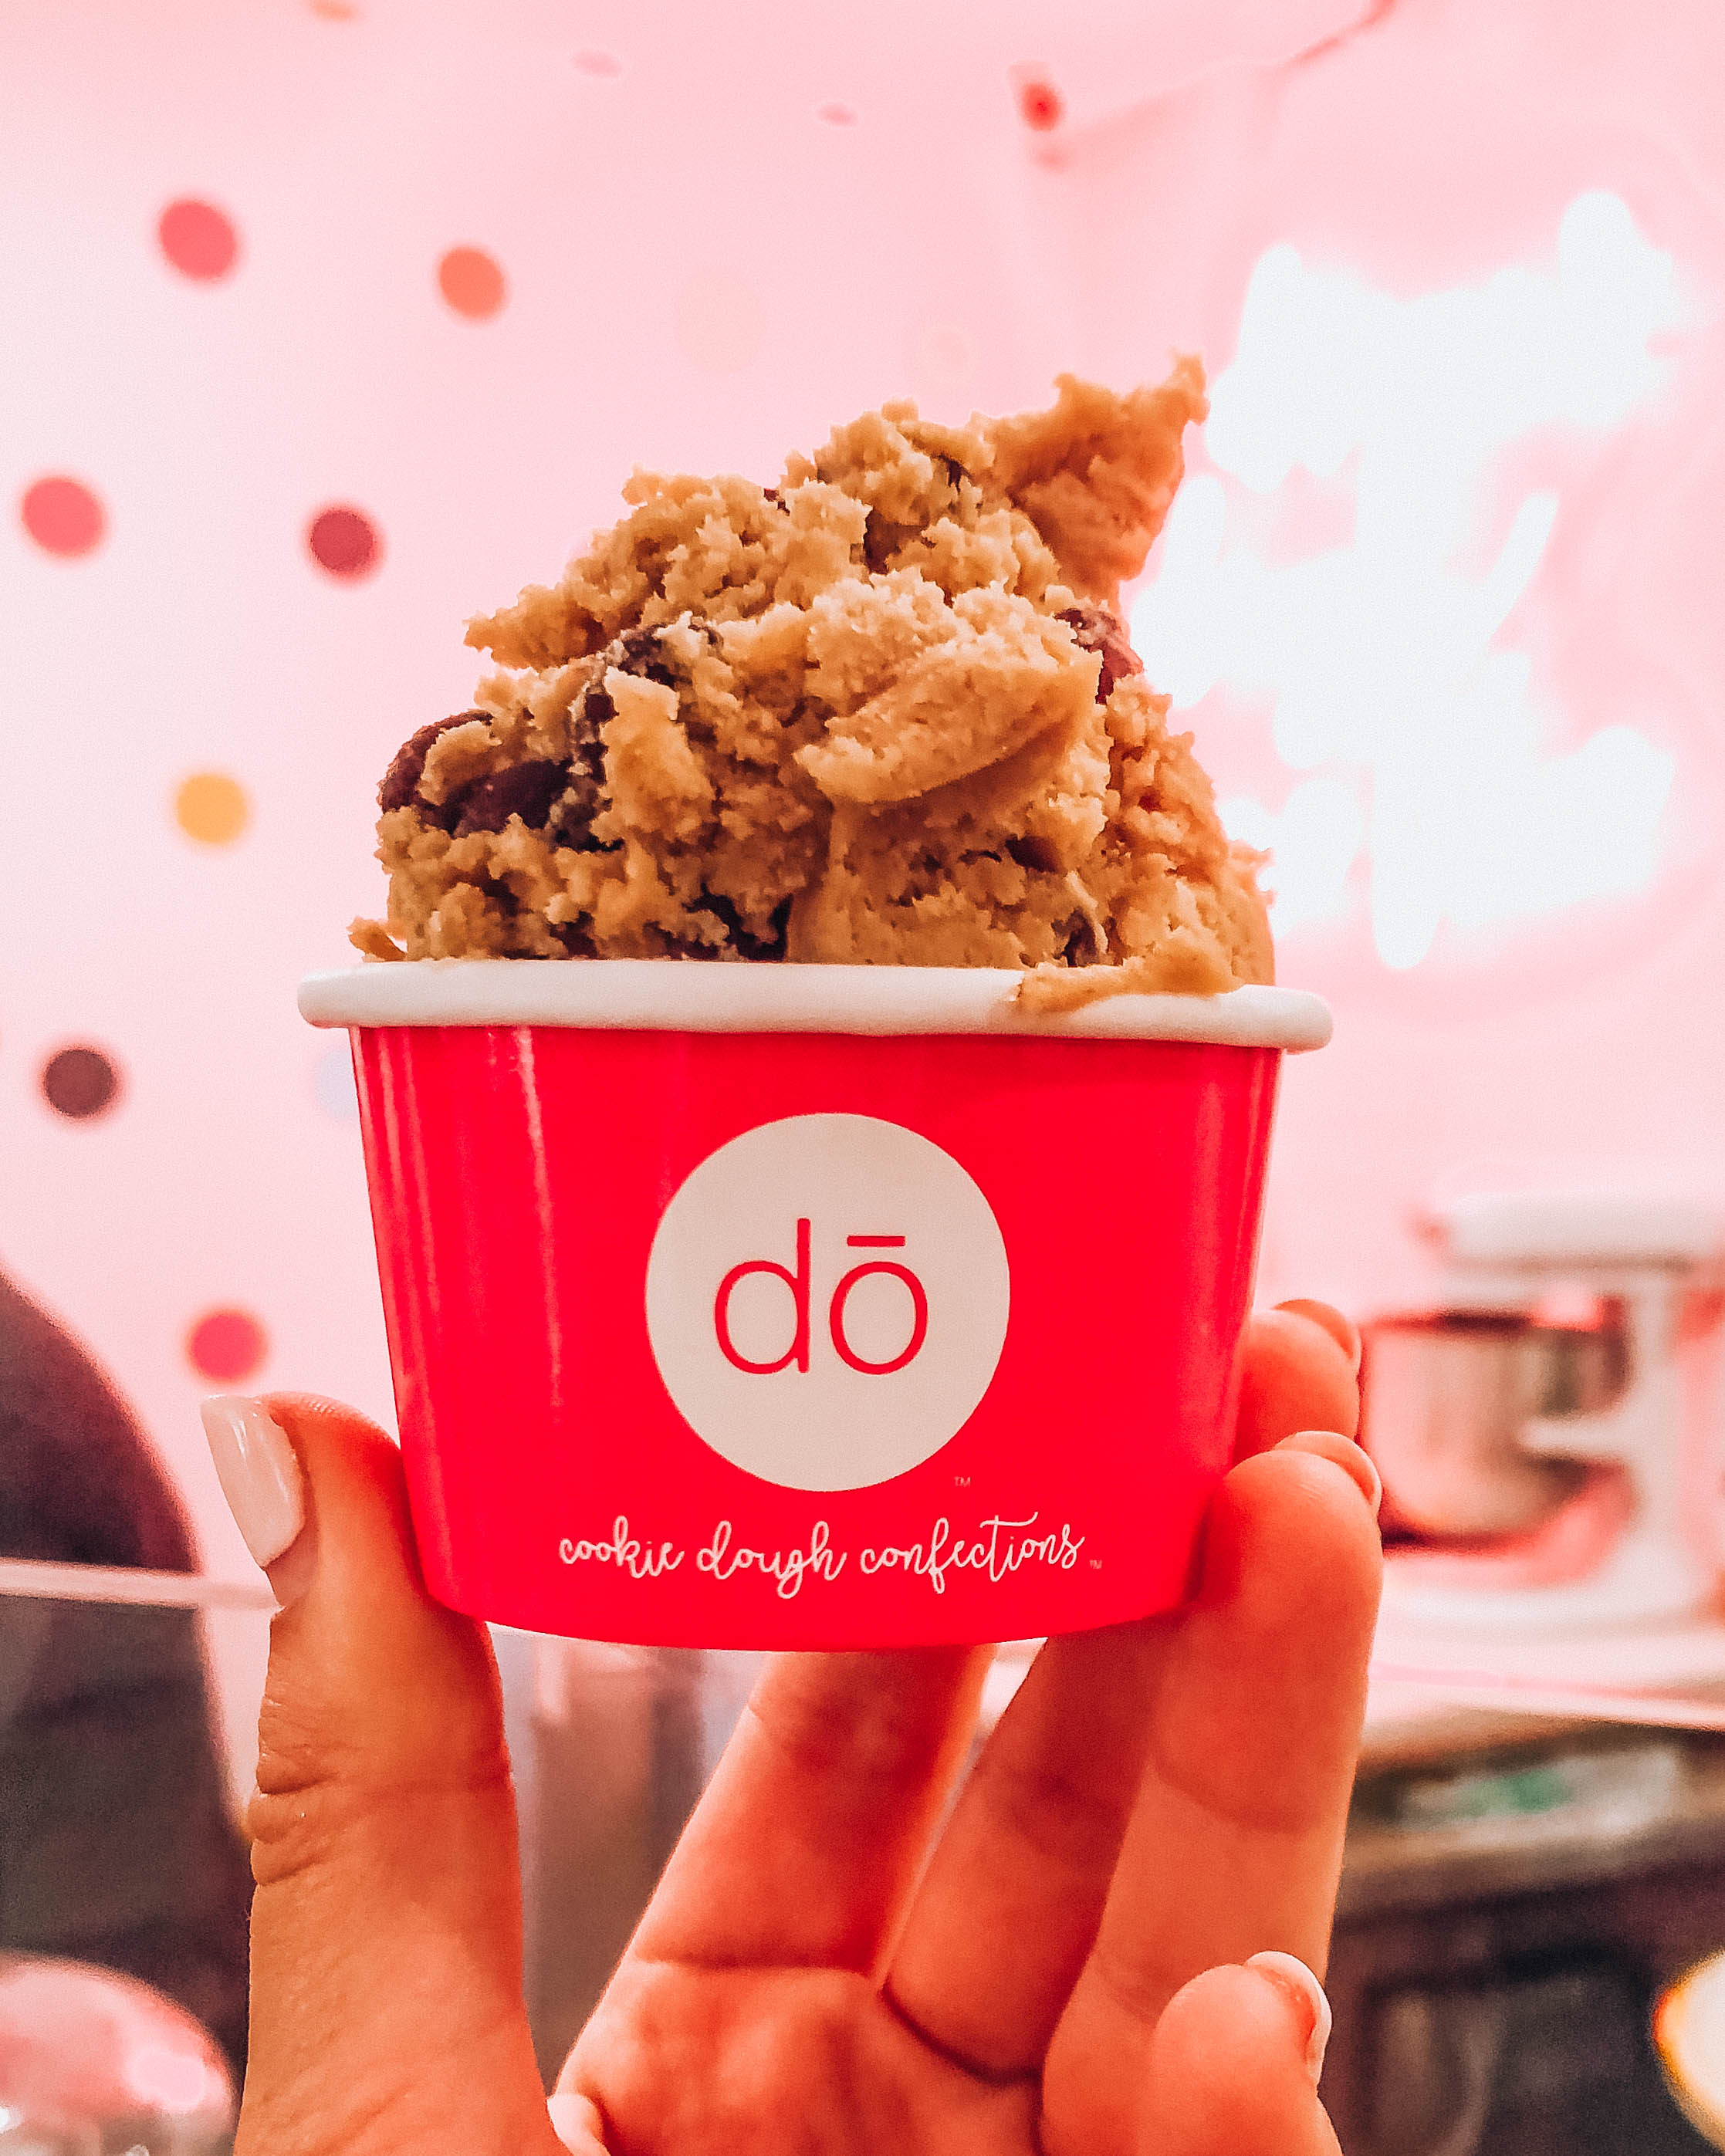 Do Cookie Dough in New York - How to plan a night out in New York City! Planning for your budget, by neighborhood (or borough), how to get the best deals on Broadway tickets, and more! / goseekexplore.com / Ally Archer